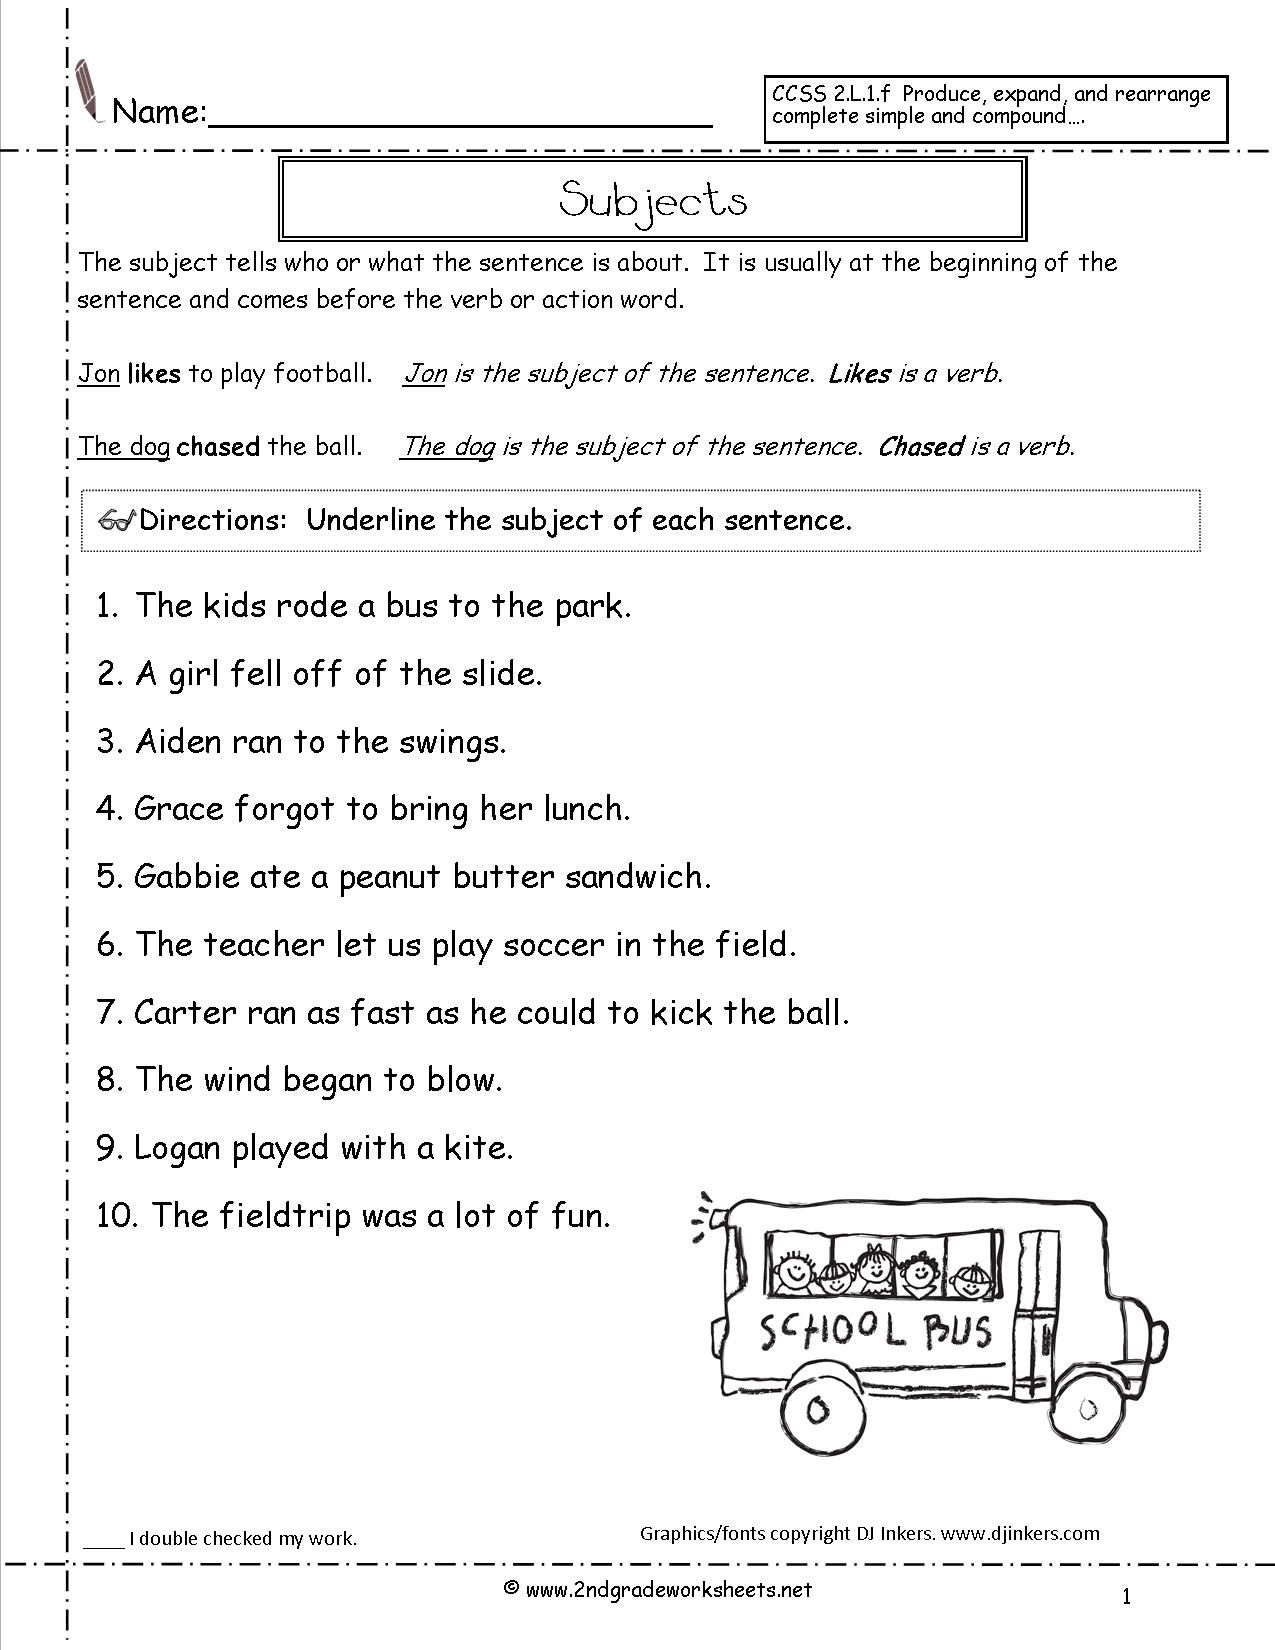 Subjects Worksheet